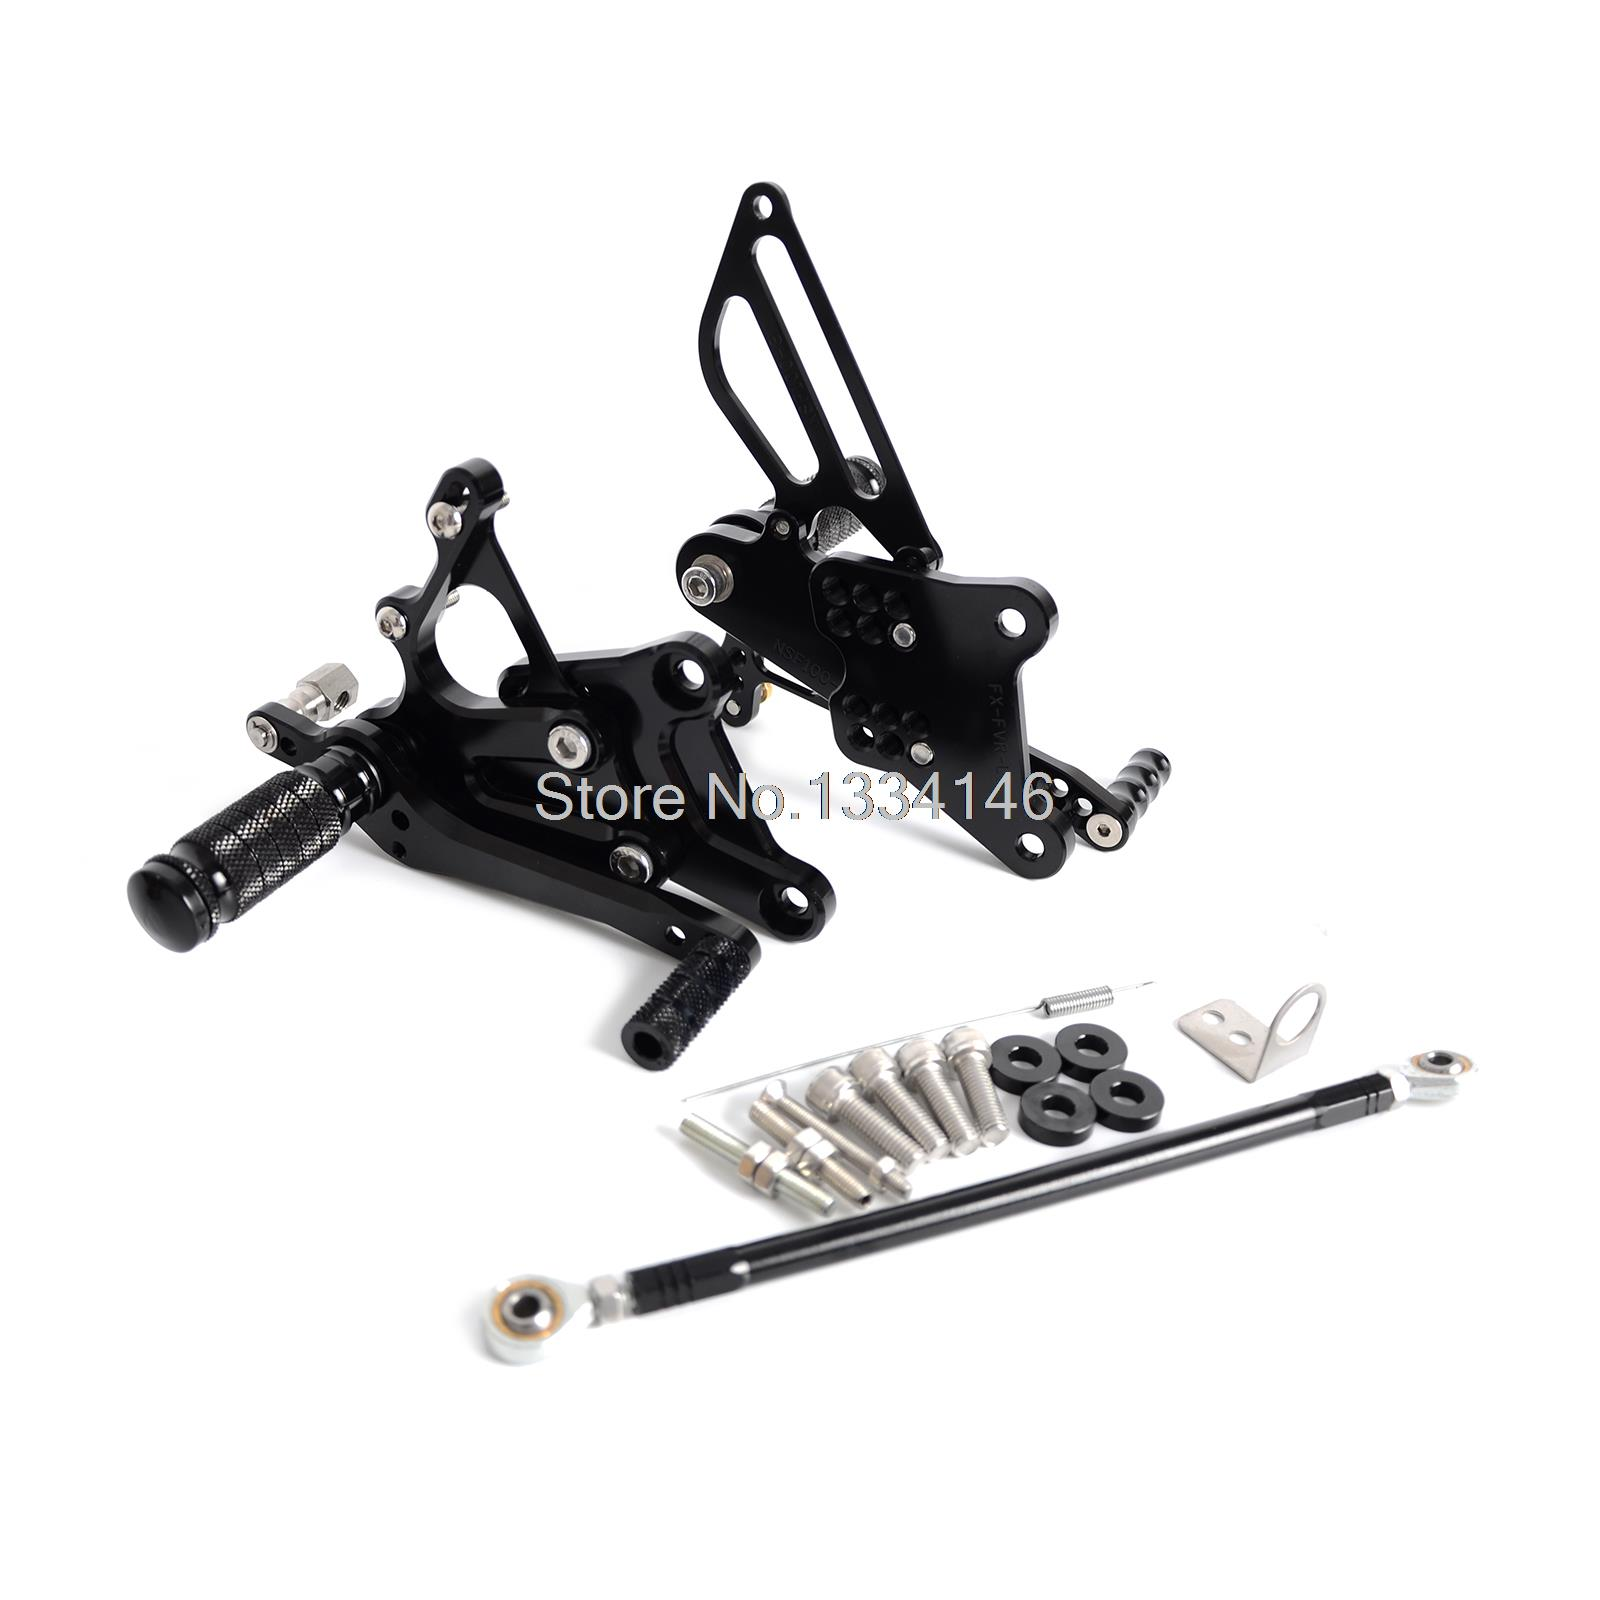 CNC Billet Racing Adjustable Foot Pegs Rear Sets For Honda VFR400 NC30 RVF400 NC35 Black